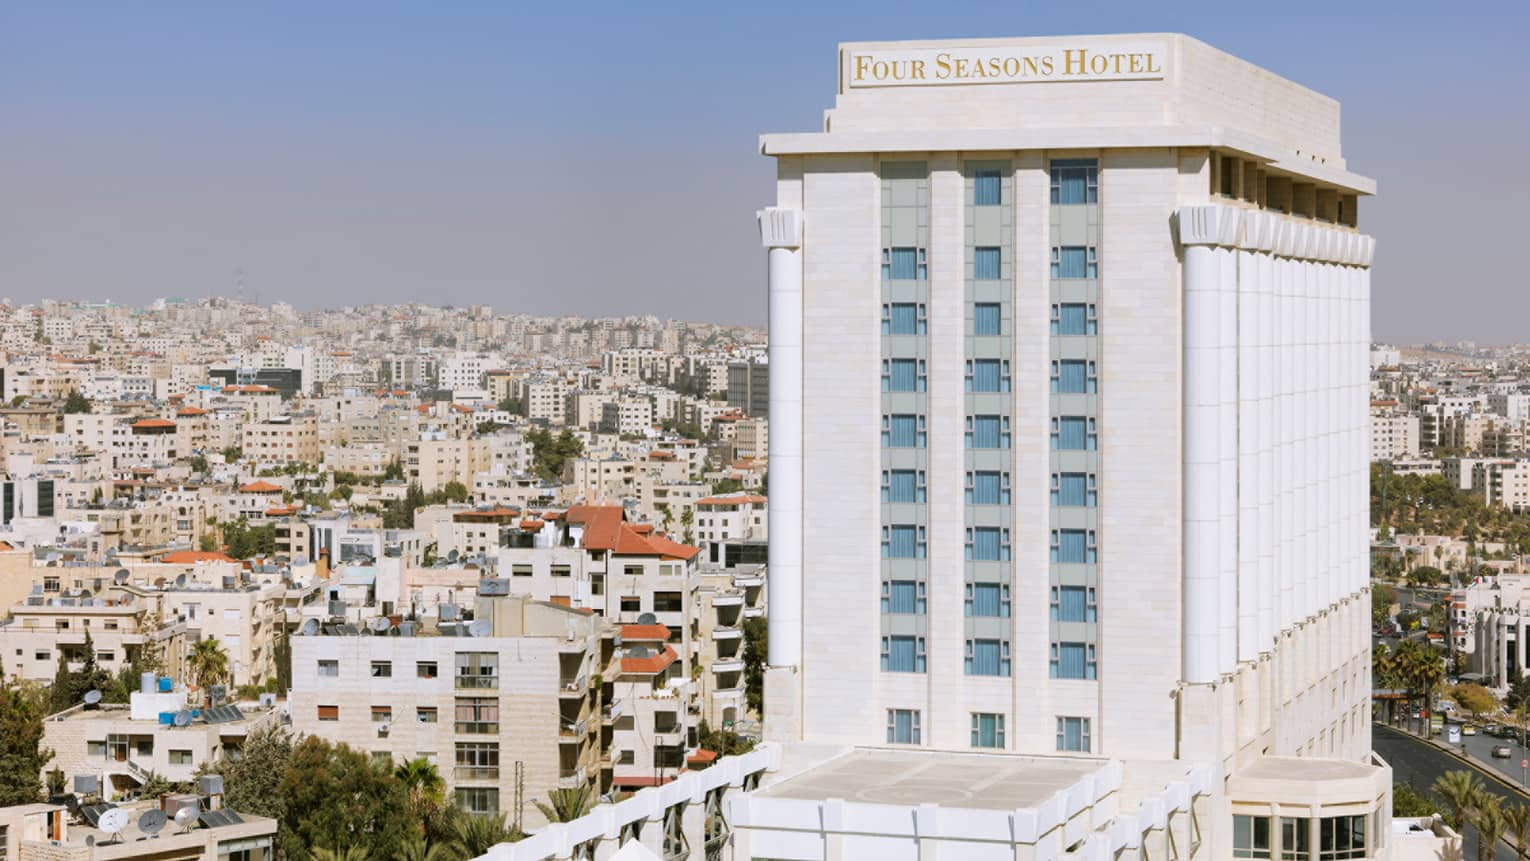 5 Star Luxury Hotel Amman Jordan Four Seasons Hotel Amman